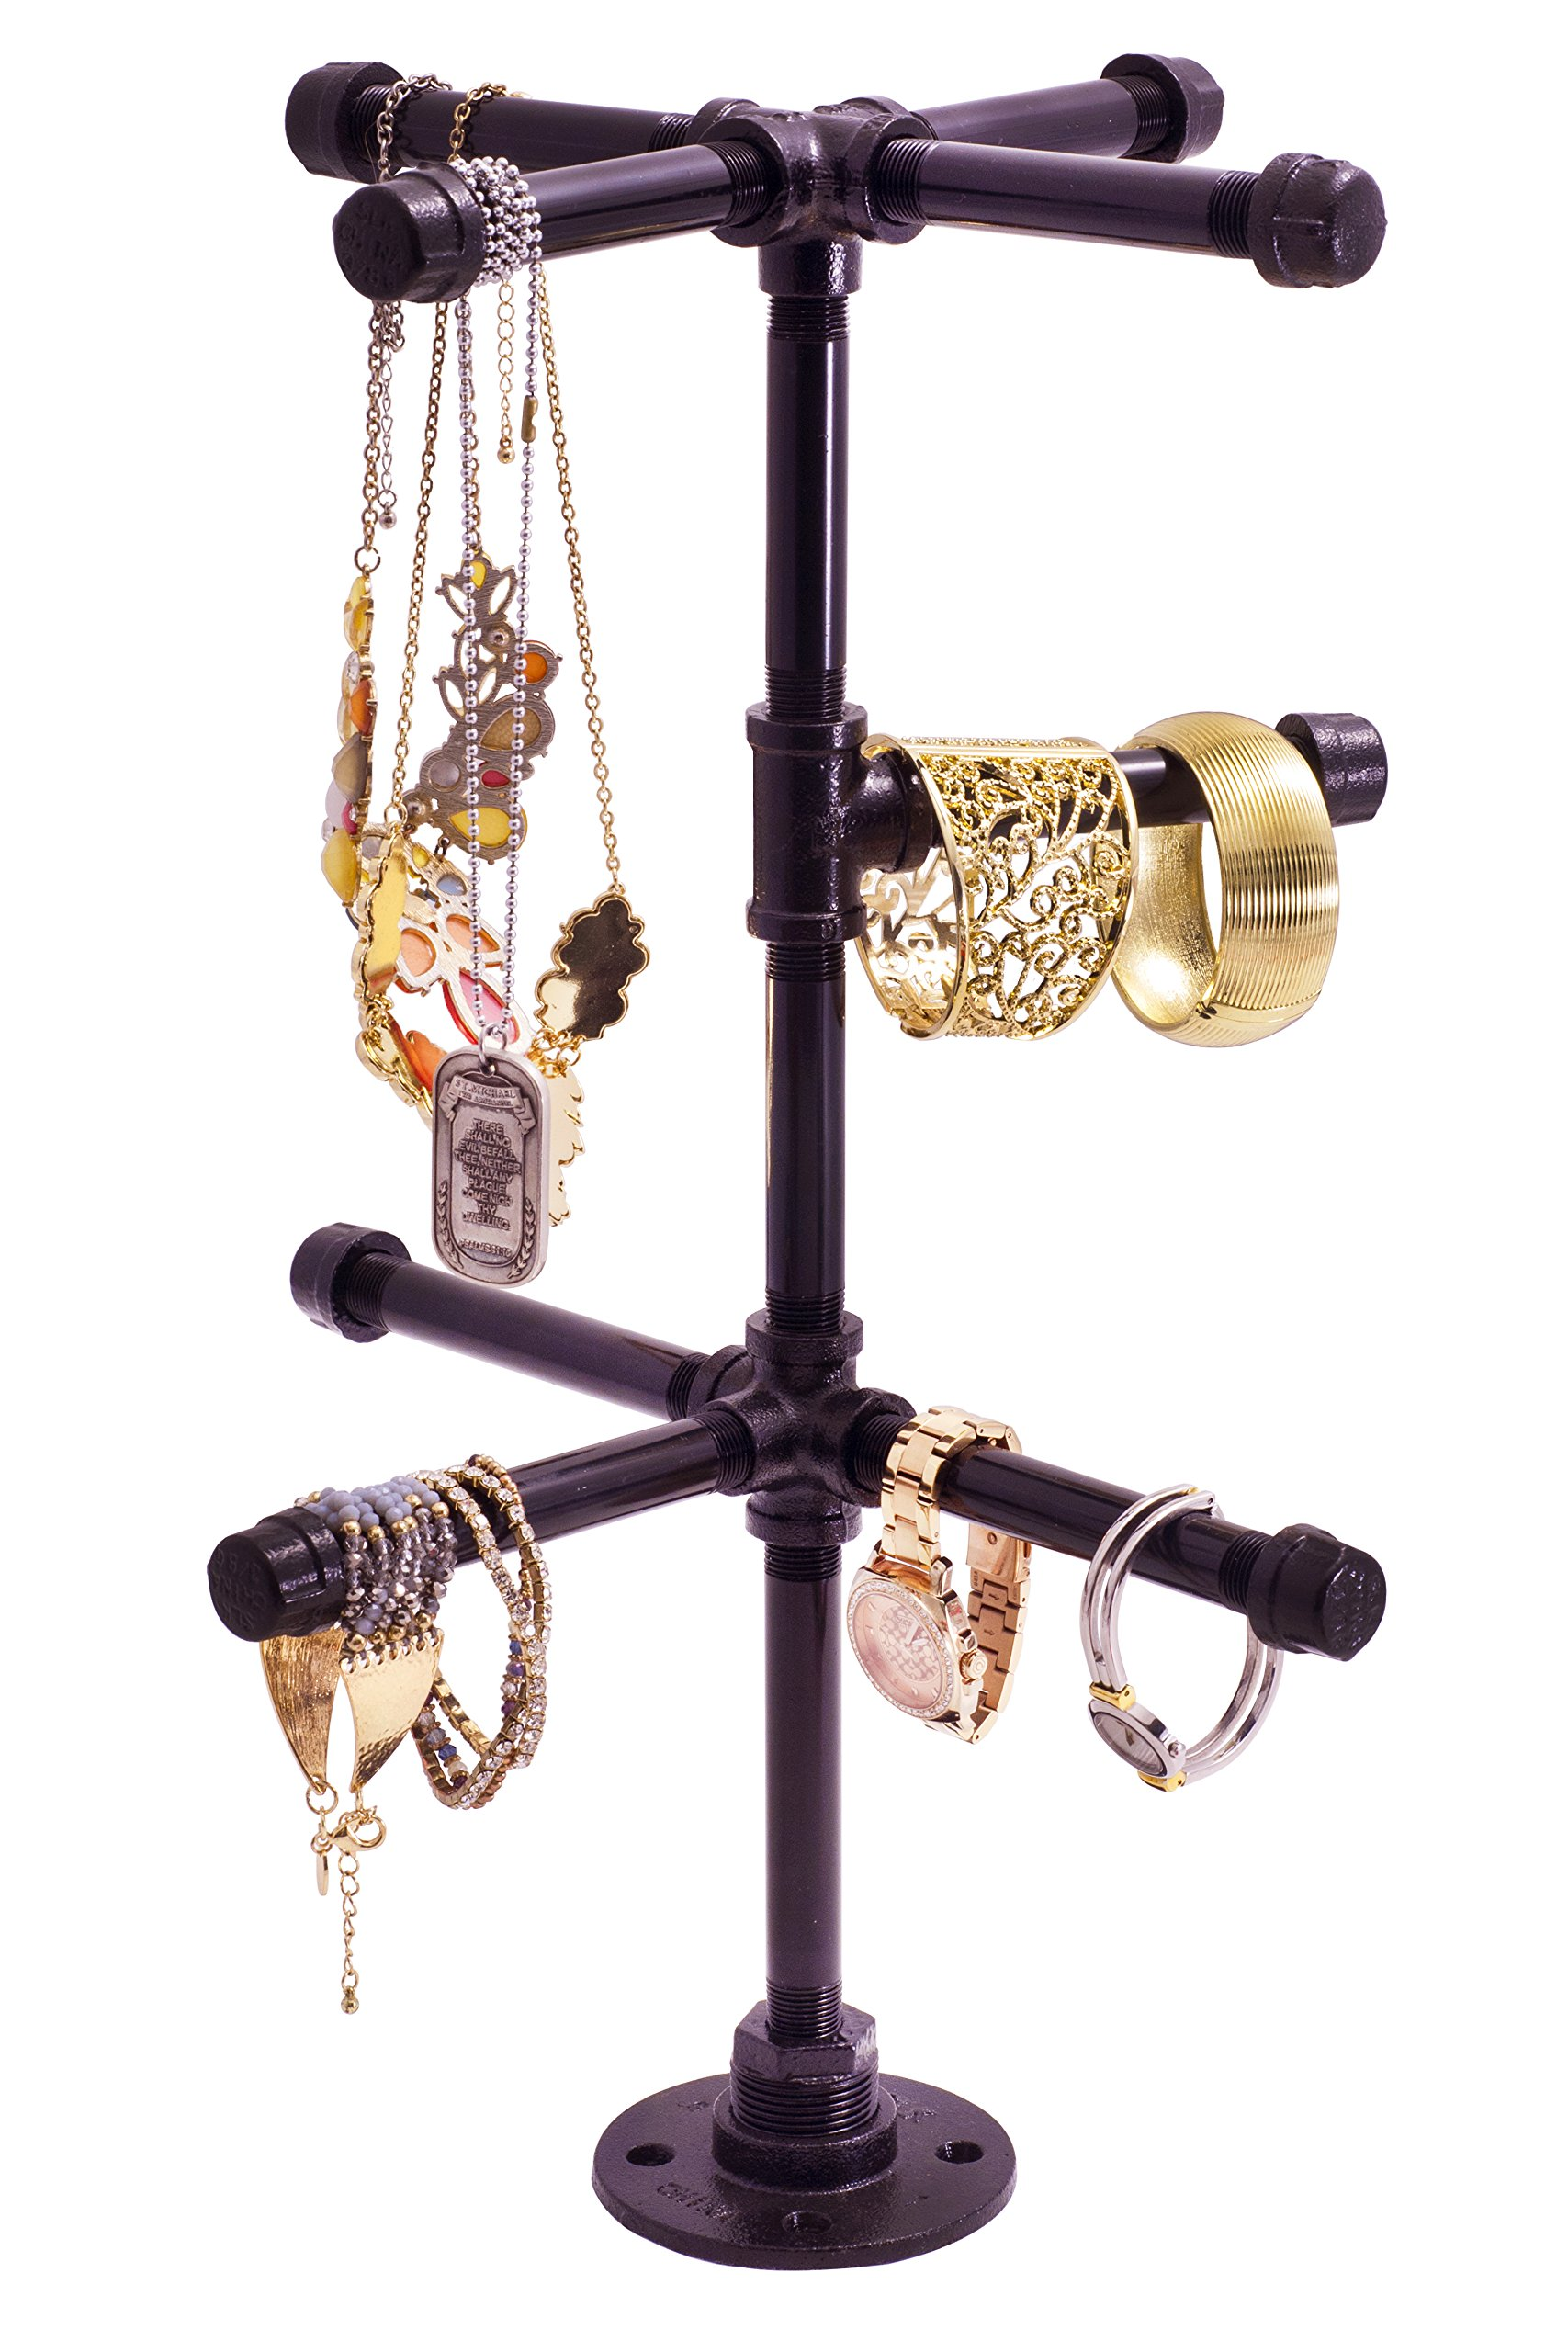 Chic Industrial Tabletop Jewelry Tree by Pipe Decor | Rustic DIY Style Stand for Hanging Necklaces, Chains, Watches and Bracelets, Display and Organize Items for Easy Access, Made of Black Metal Pipe